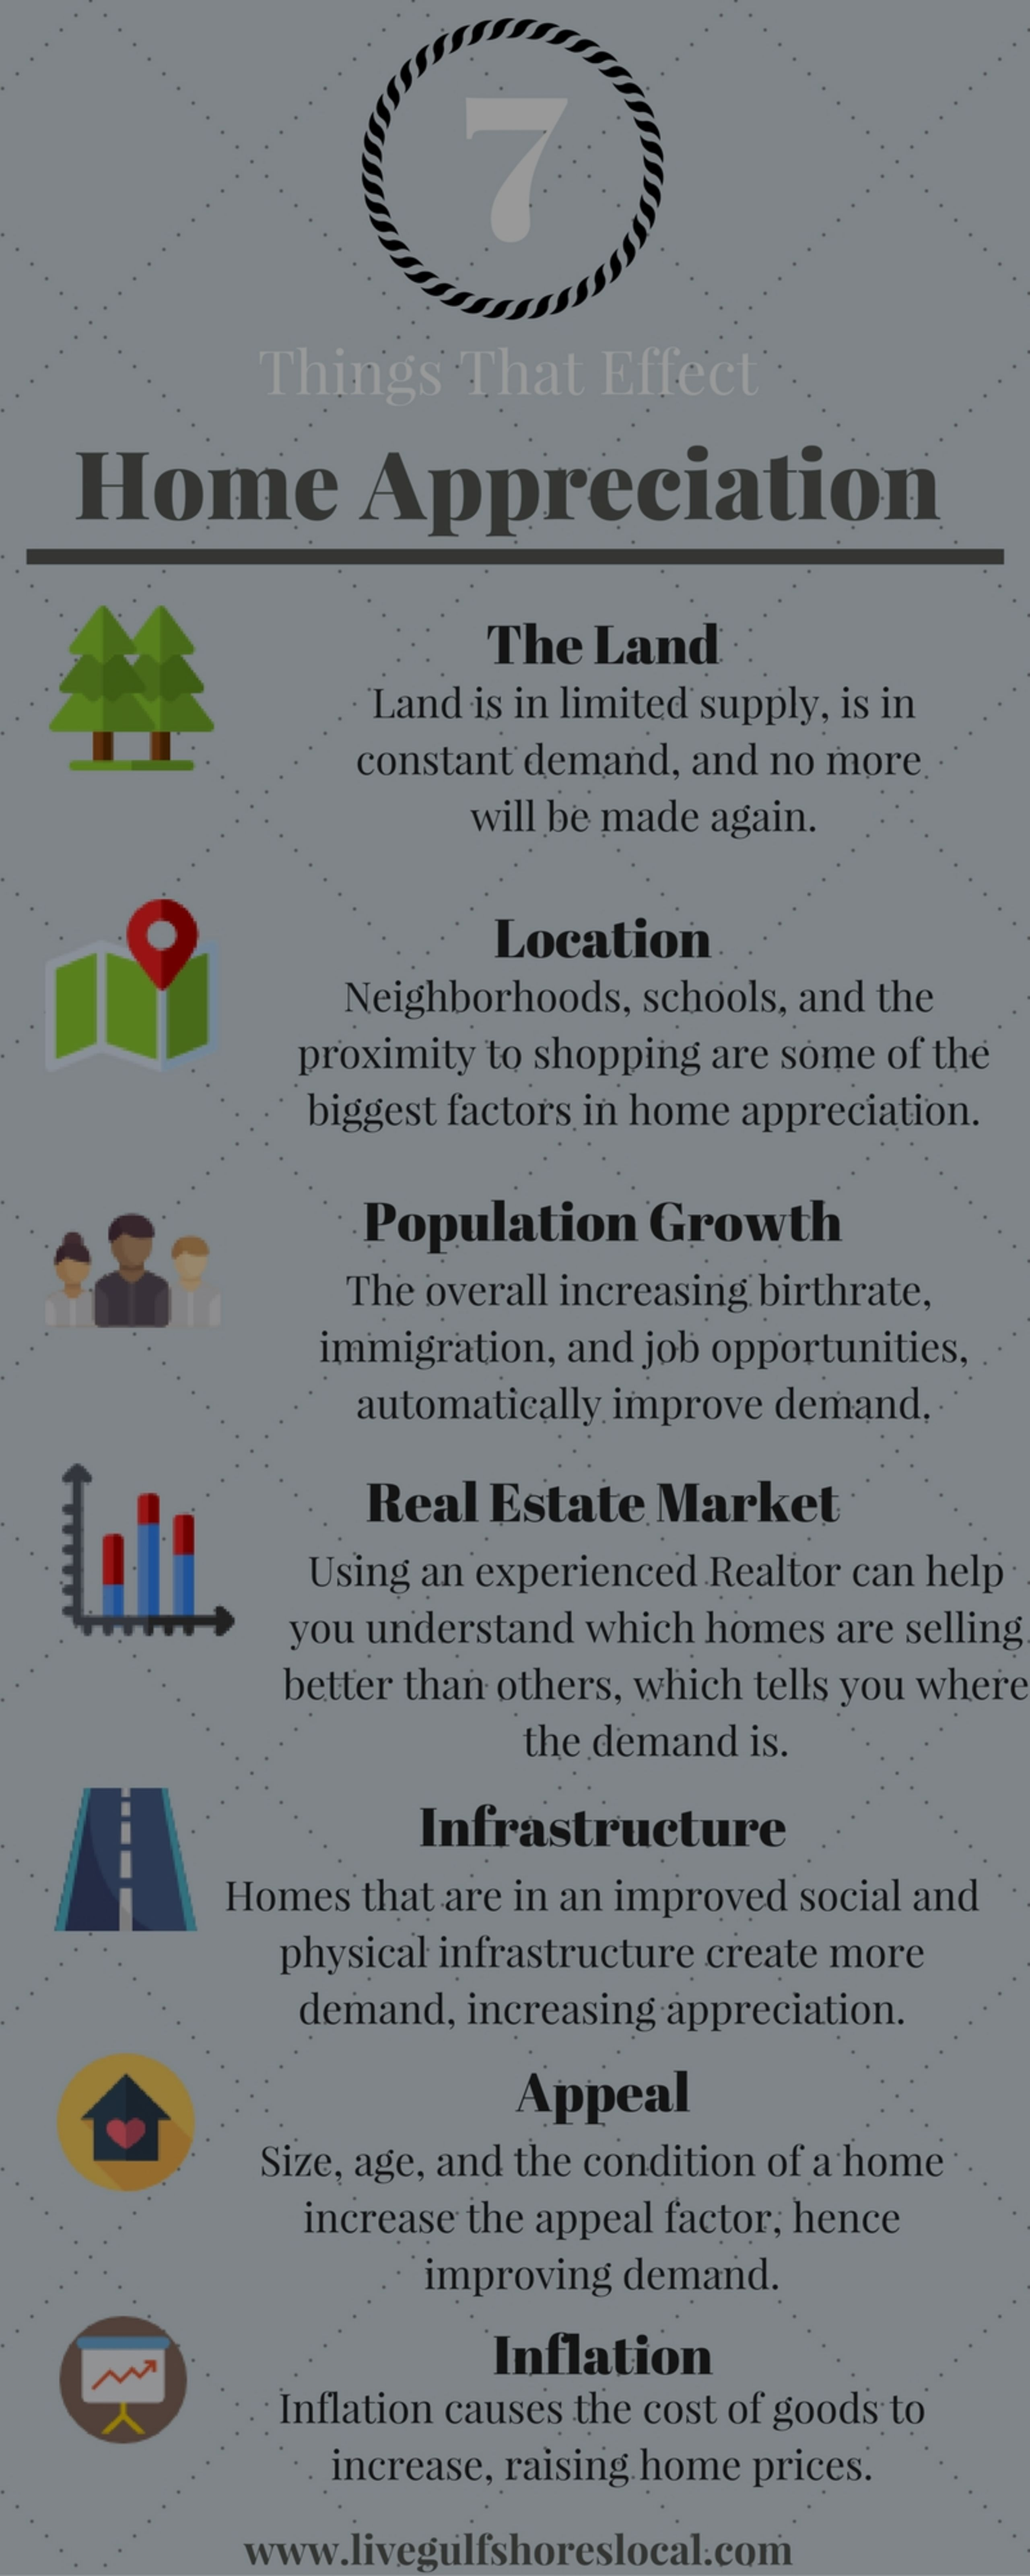 What Causes a Home to Appreciate?